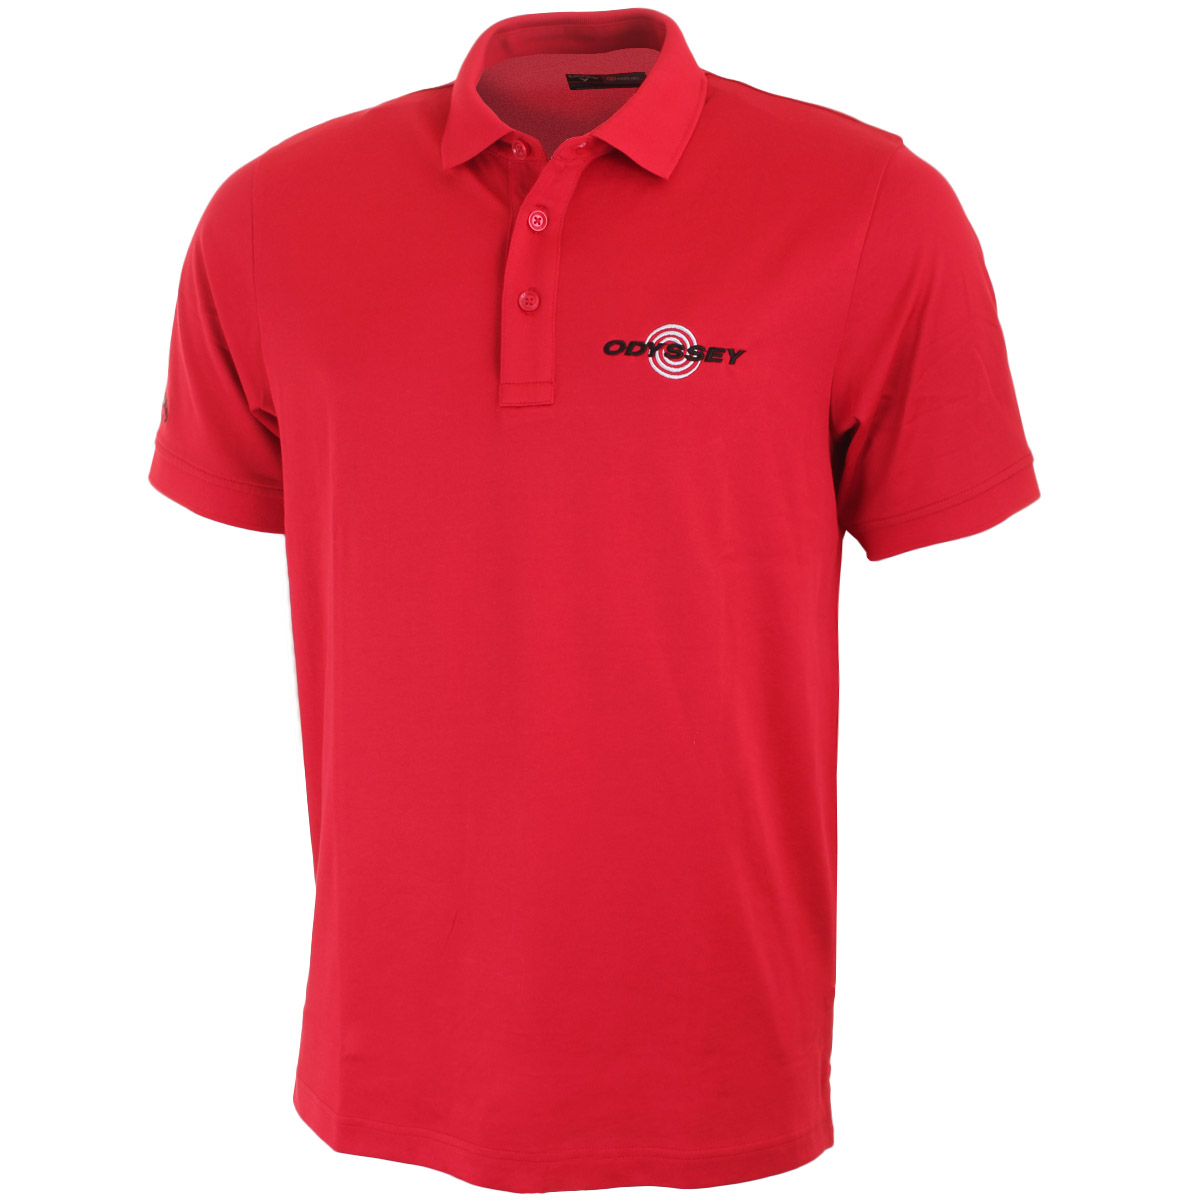 Callaway golf mens solid cotton odyssey tour logo polo shirt for Cotton polo shirts with logo